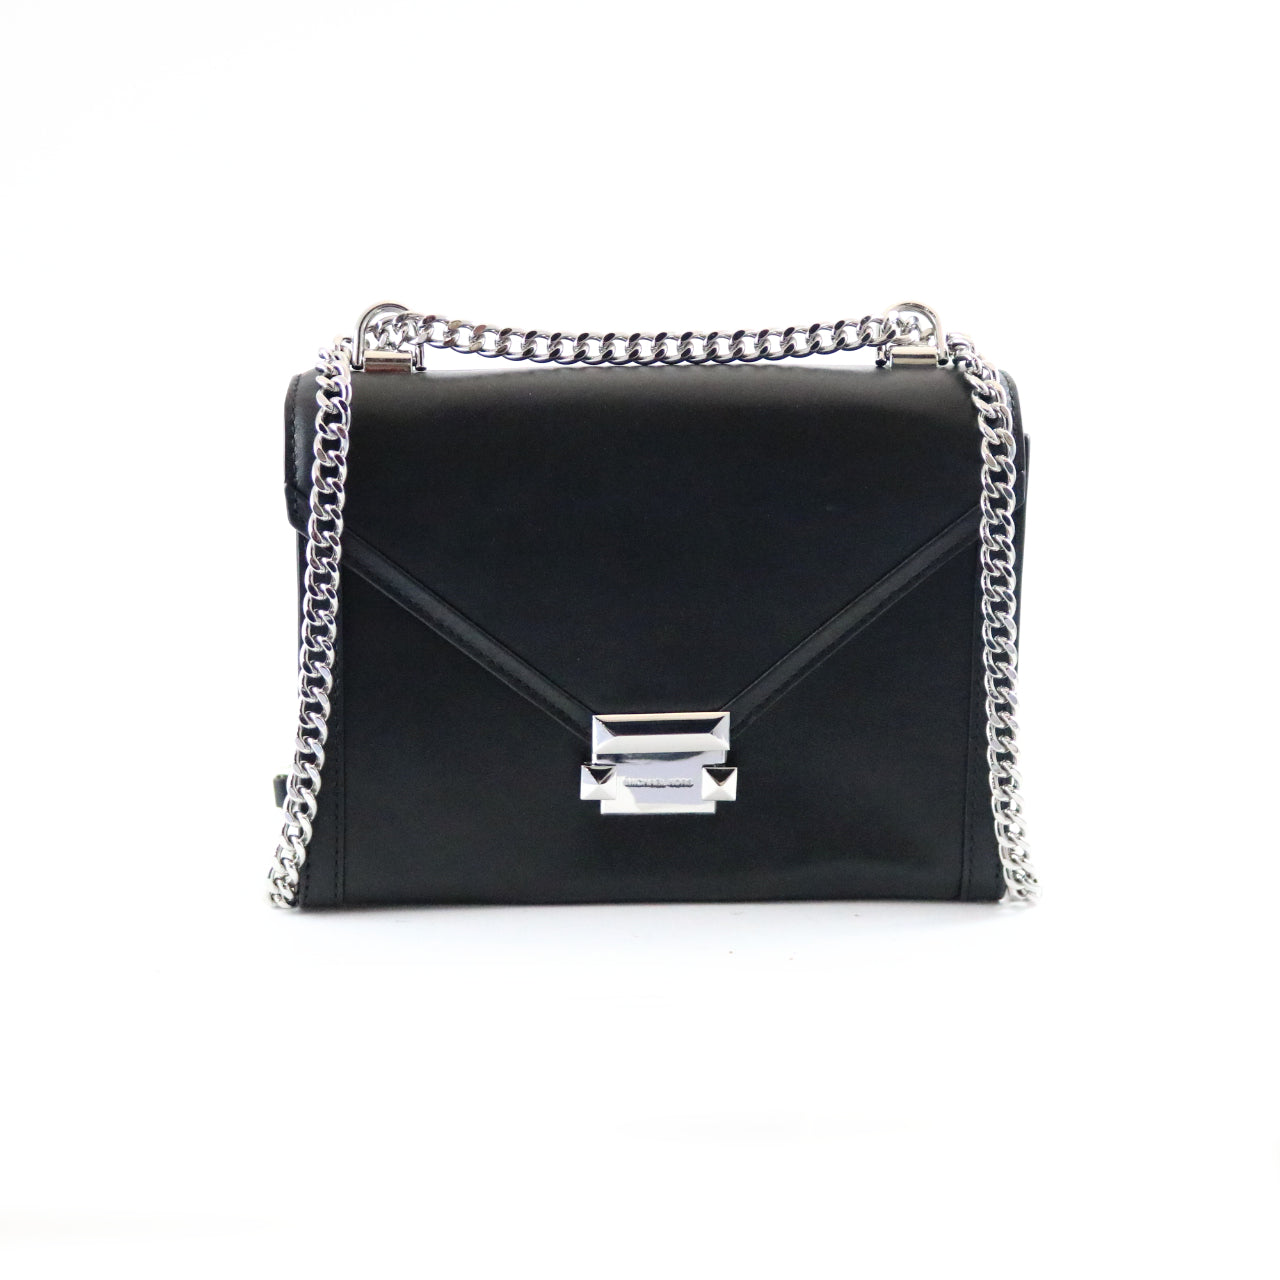 Whitney Small Leather Convertible Bag